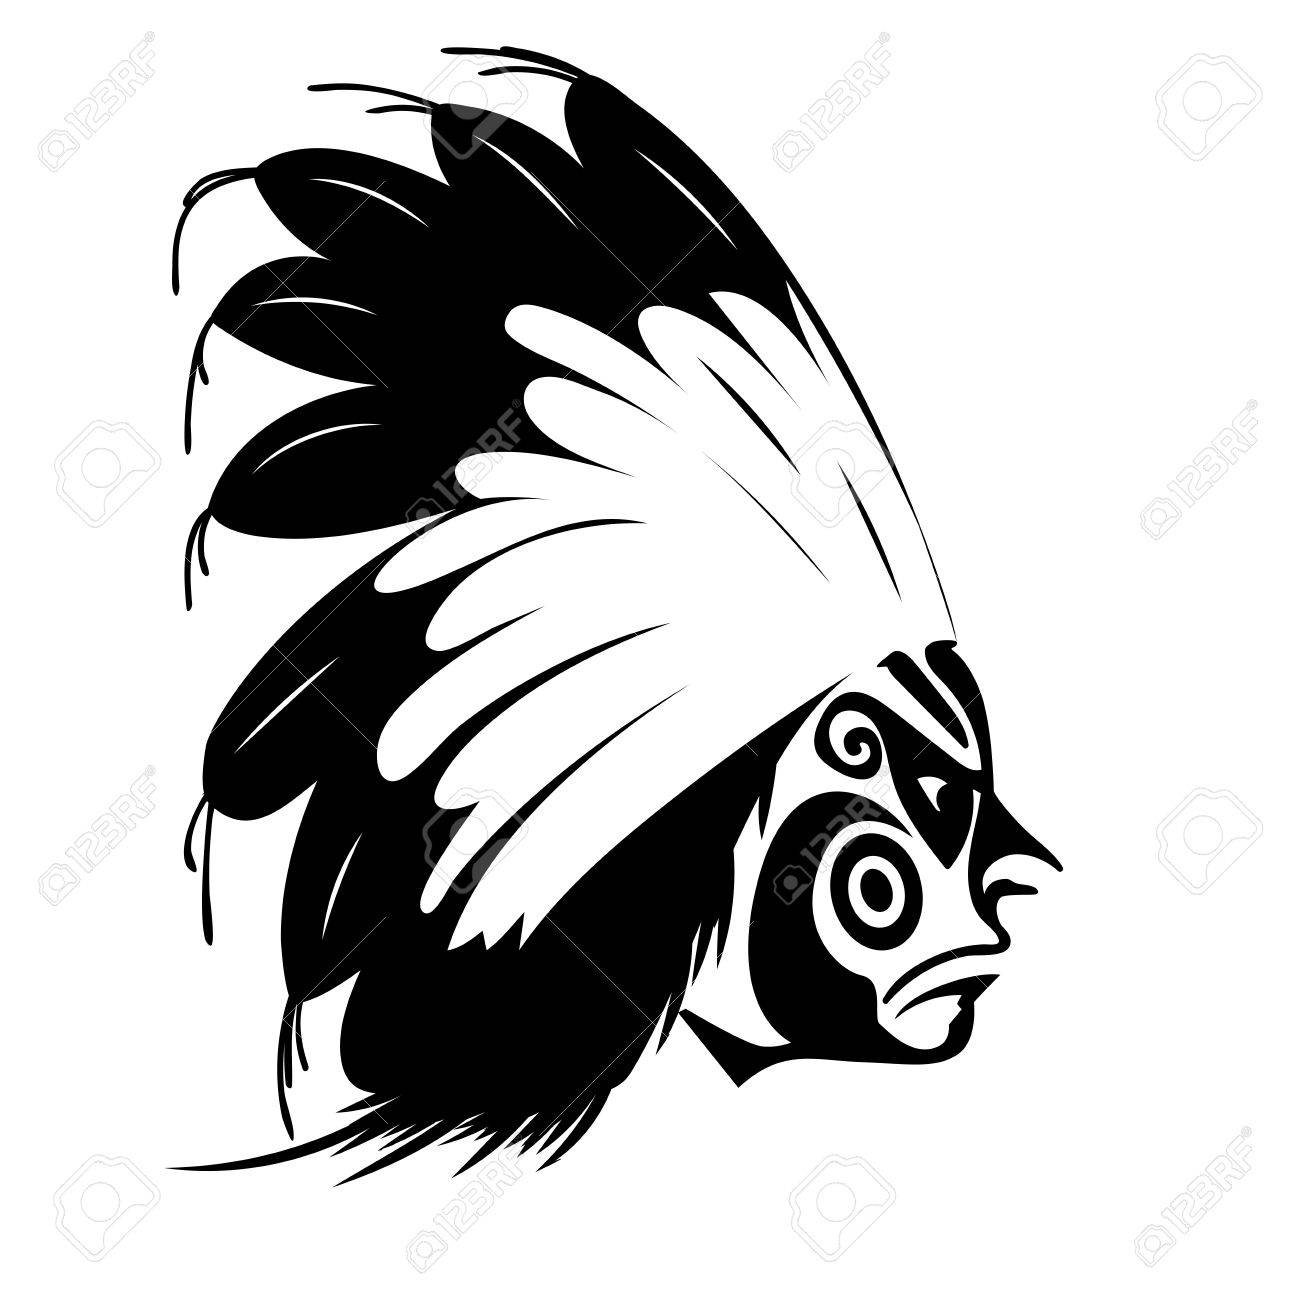 hight resolution of north american indian chief illustration stock vector 30579454